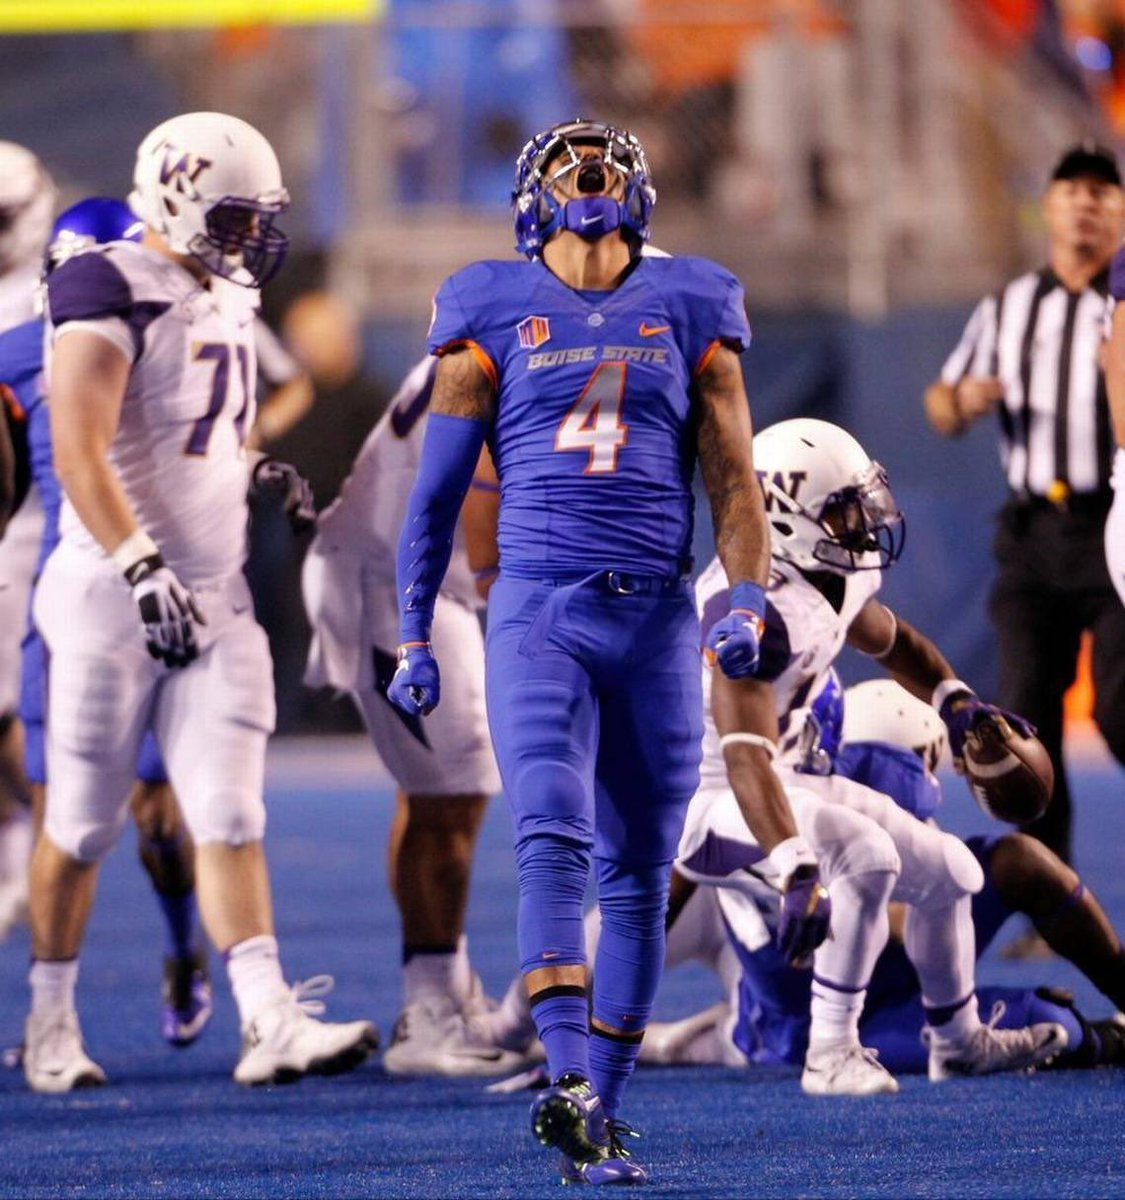 I am beyond bless and excited to announce ! I have received an offer from Boise State !!! #BleedBlue <br>http://pic.twitter.com/j68yJ6G6Yv